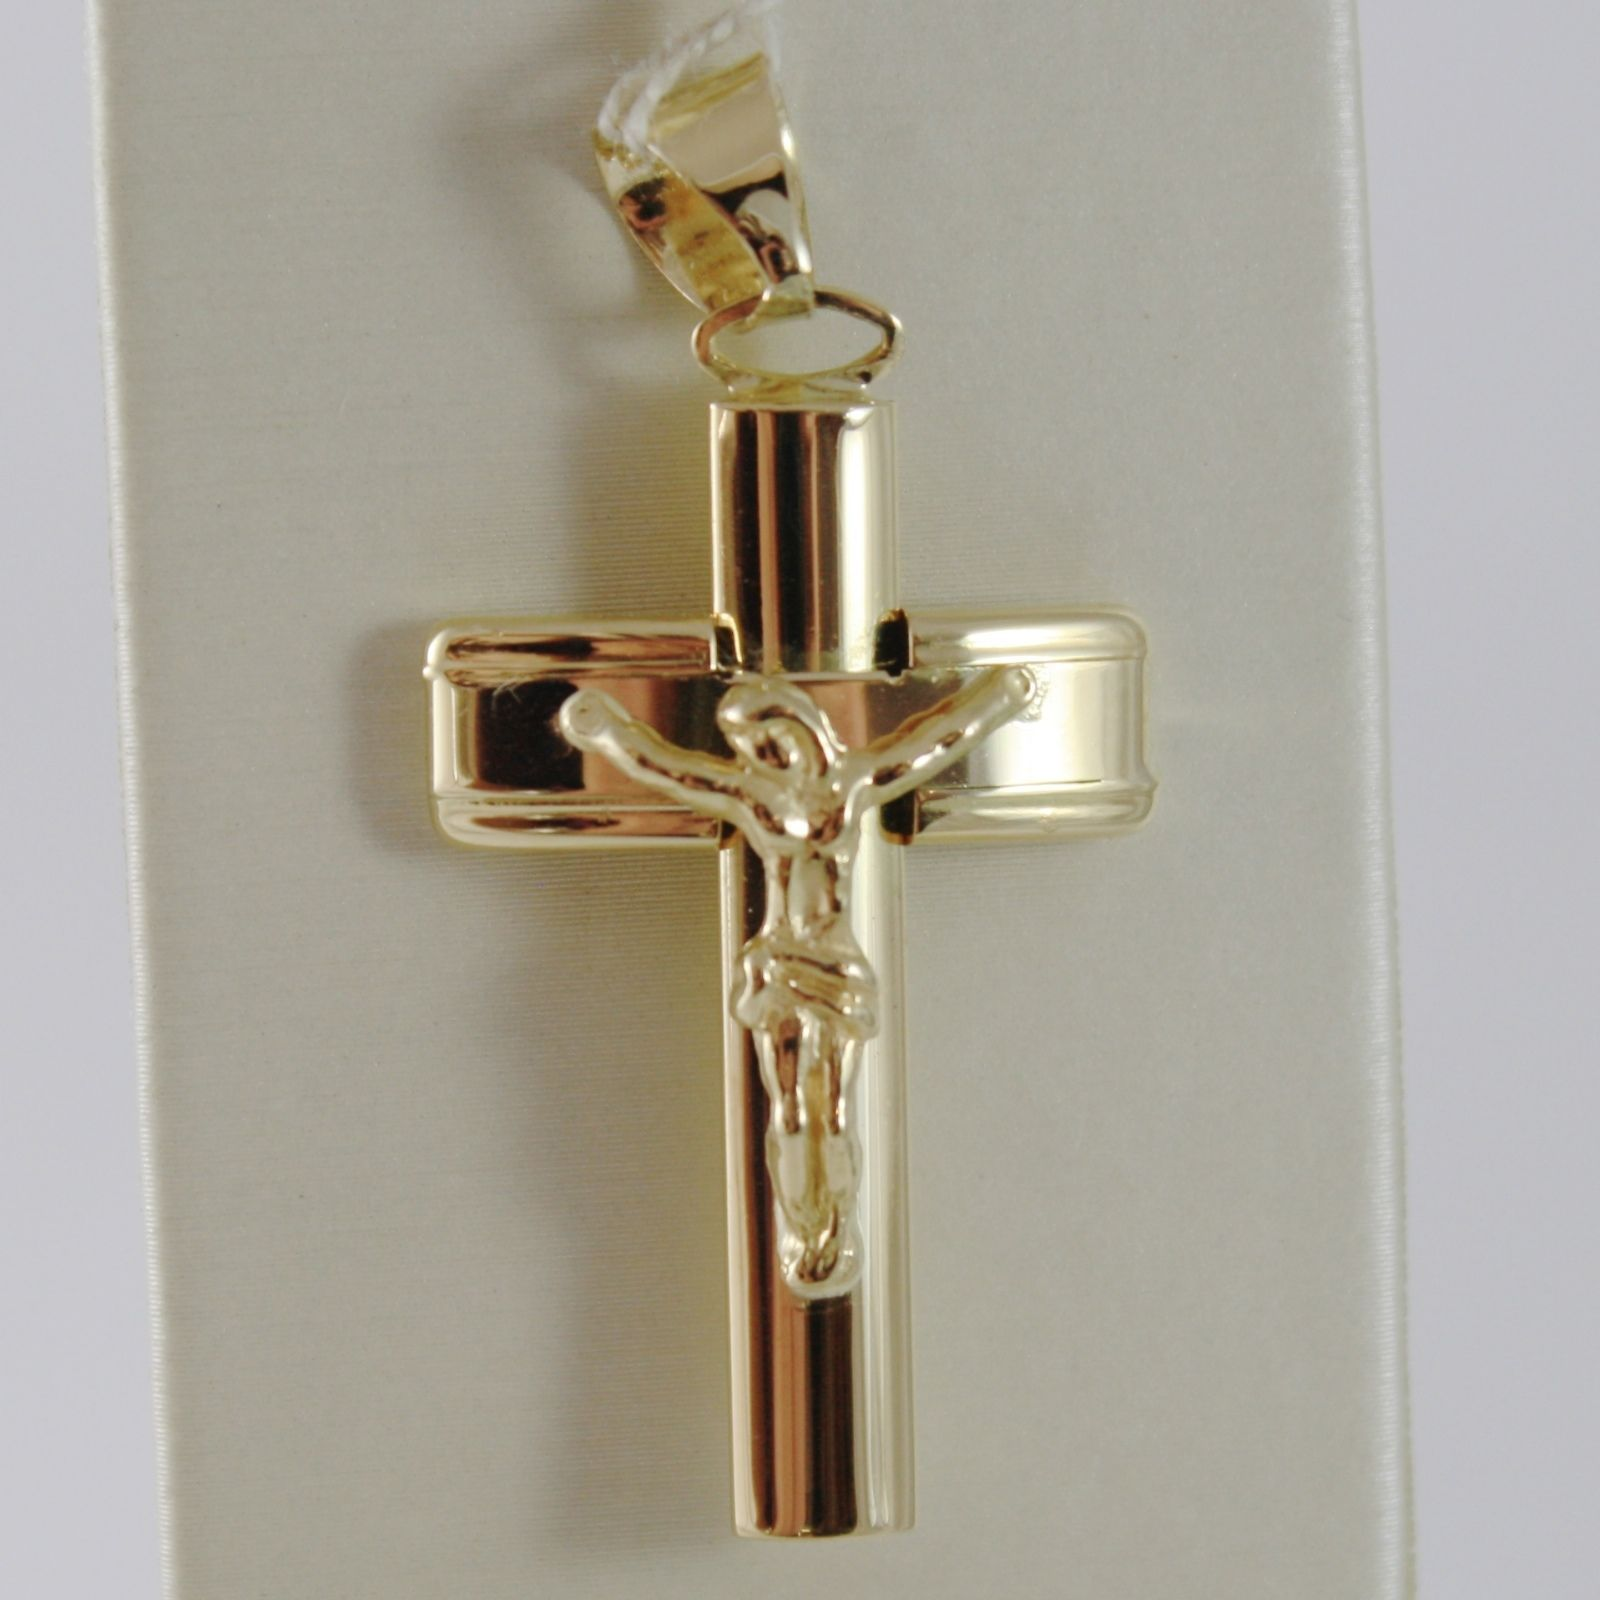 18K YELLOW JESUS GOLD CROSS SMOOTH STYLIZED FINELY WORKED CURVED MADE IN ITALY